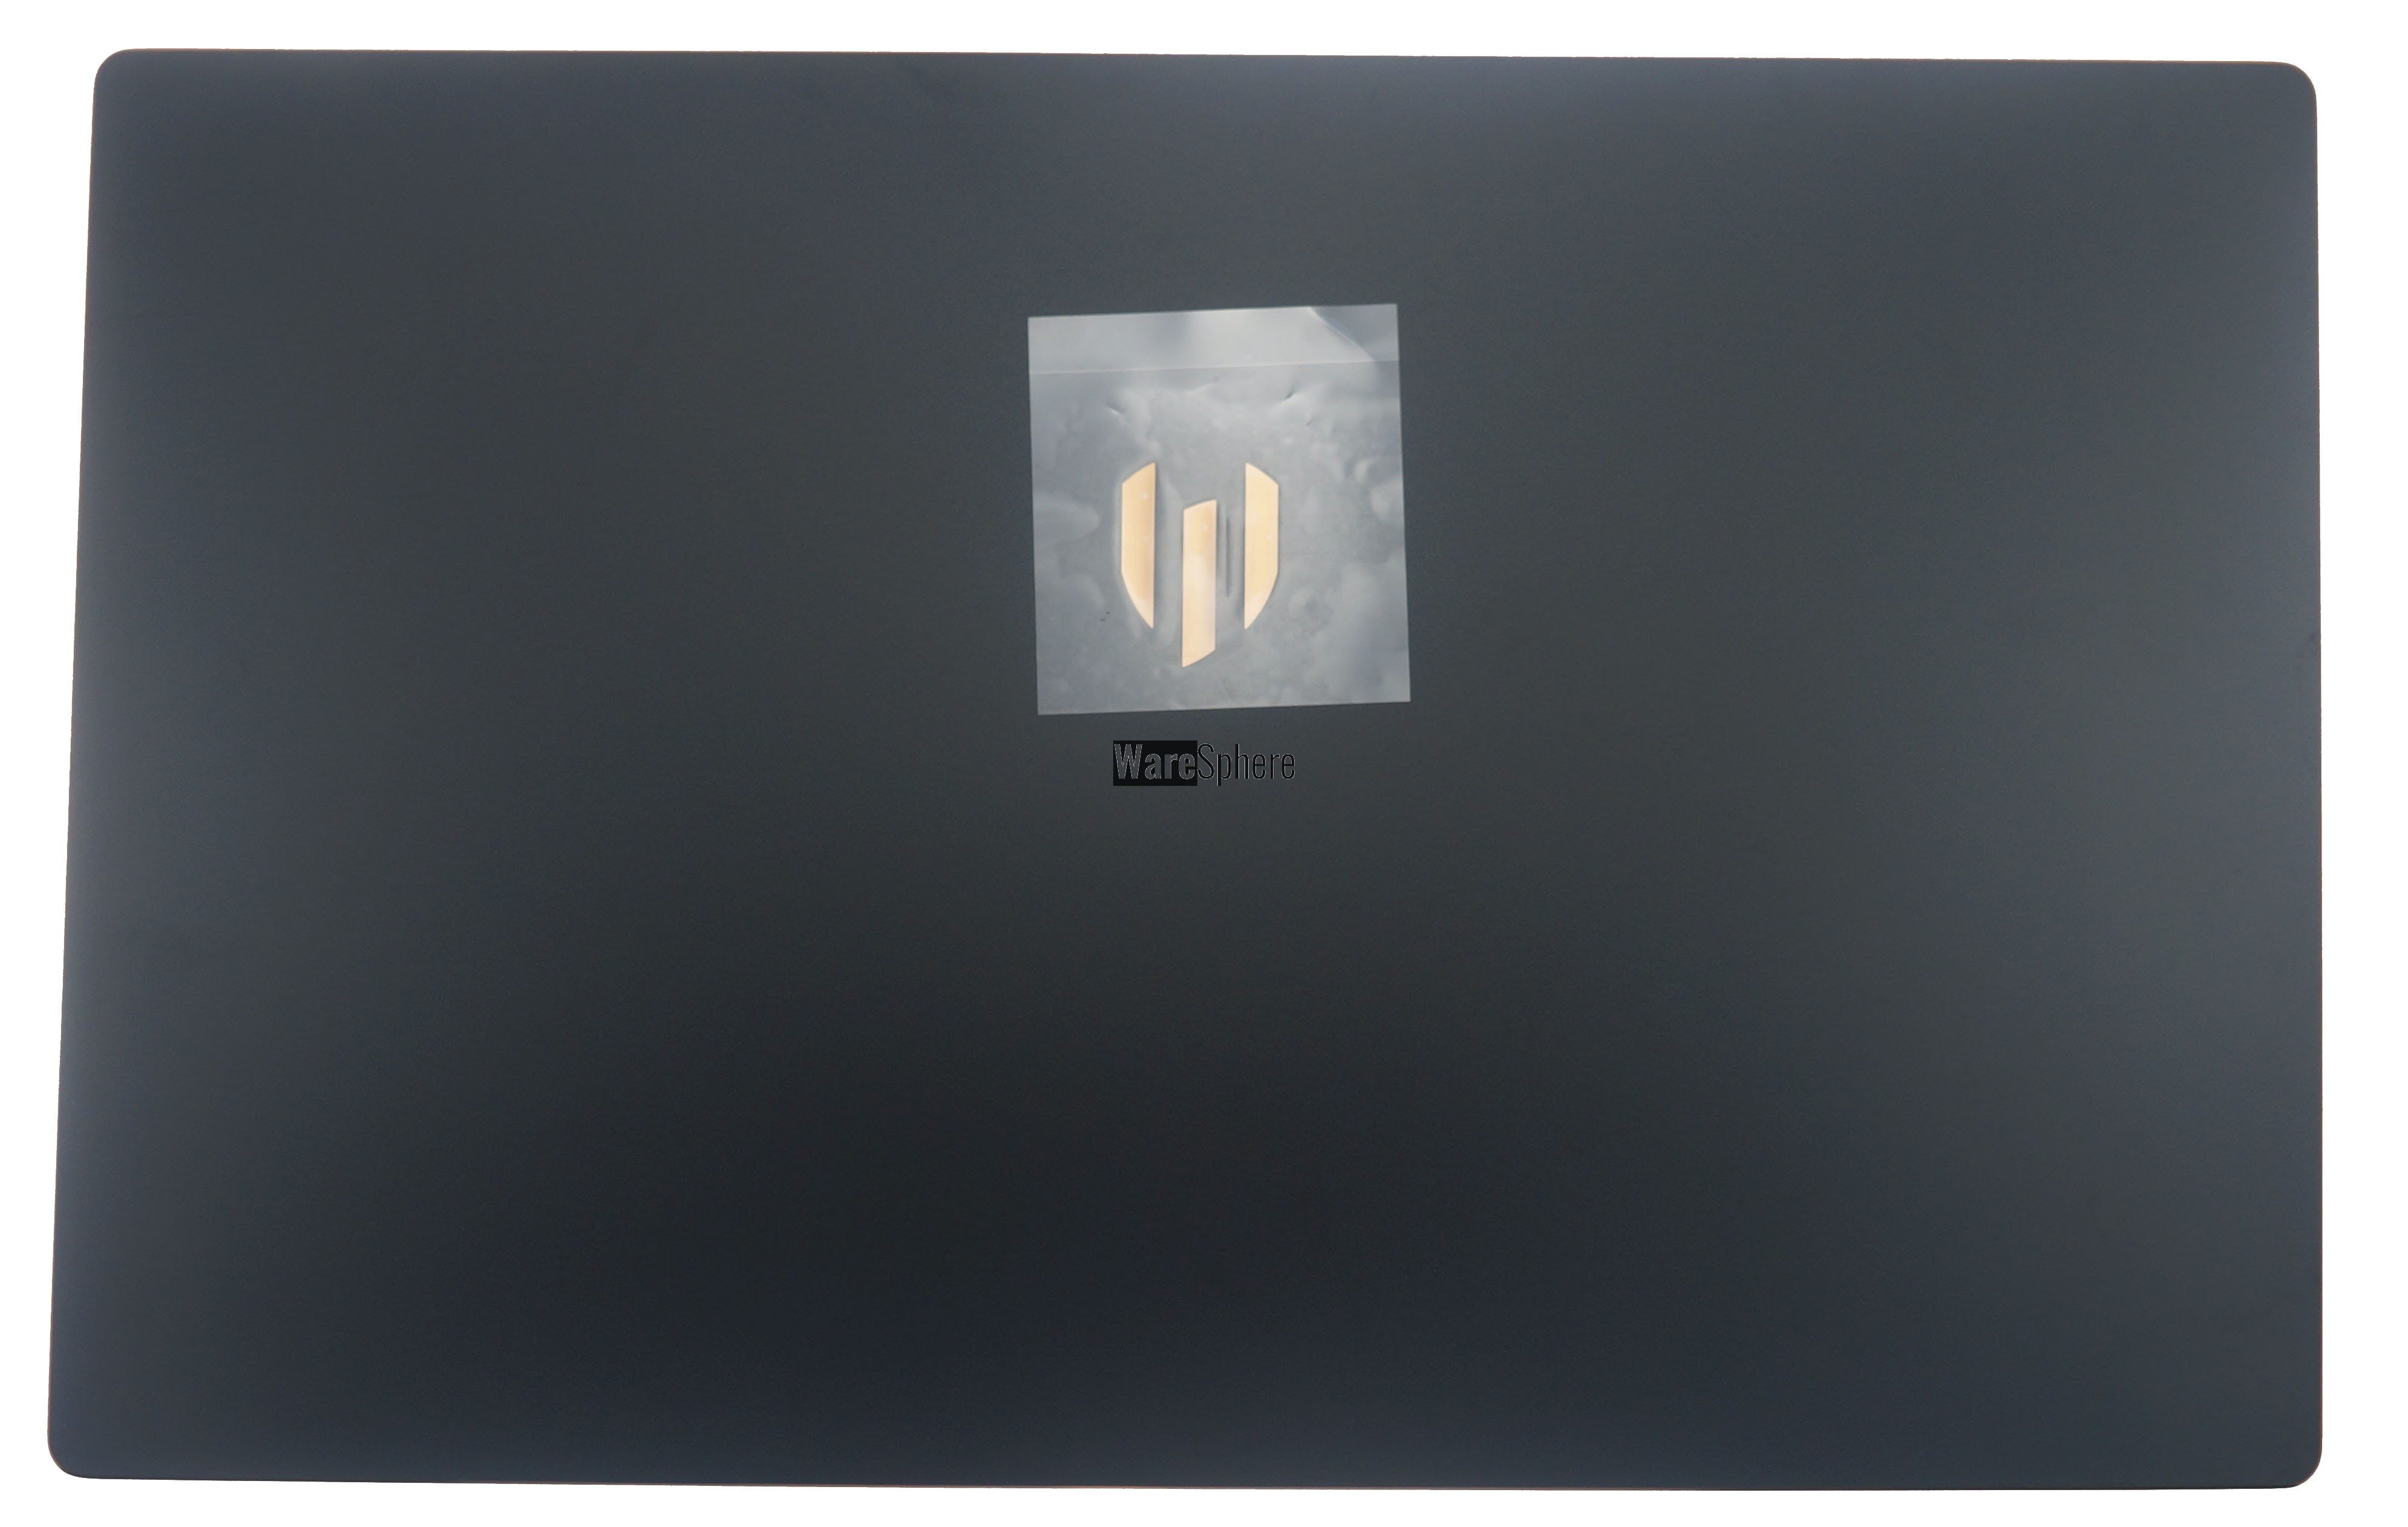 LCD Back Cover for MSI P75 WS75 GS75 3077G1A221HG01 Black 4 screw posts